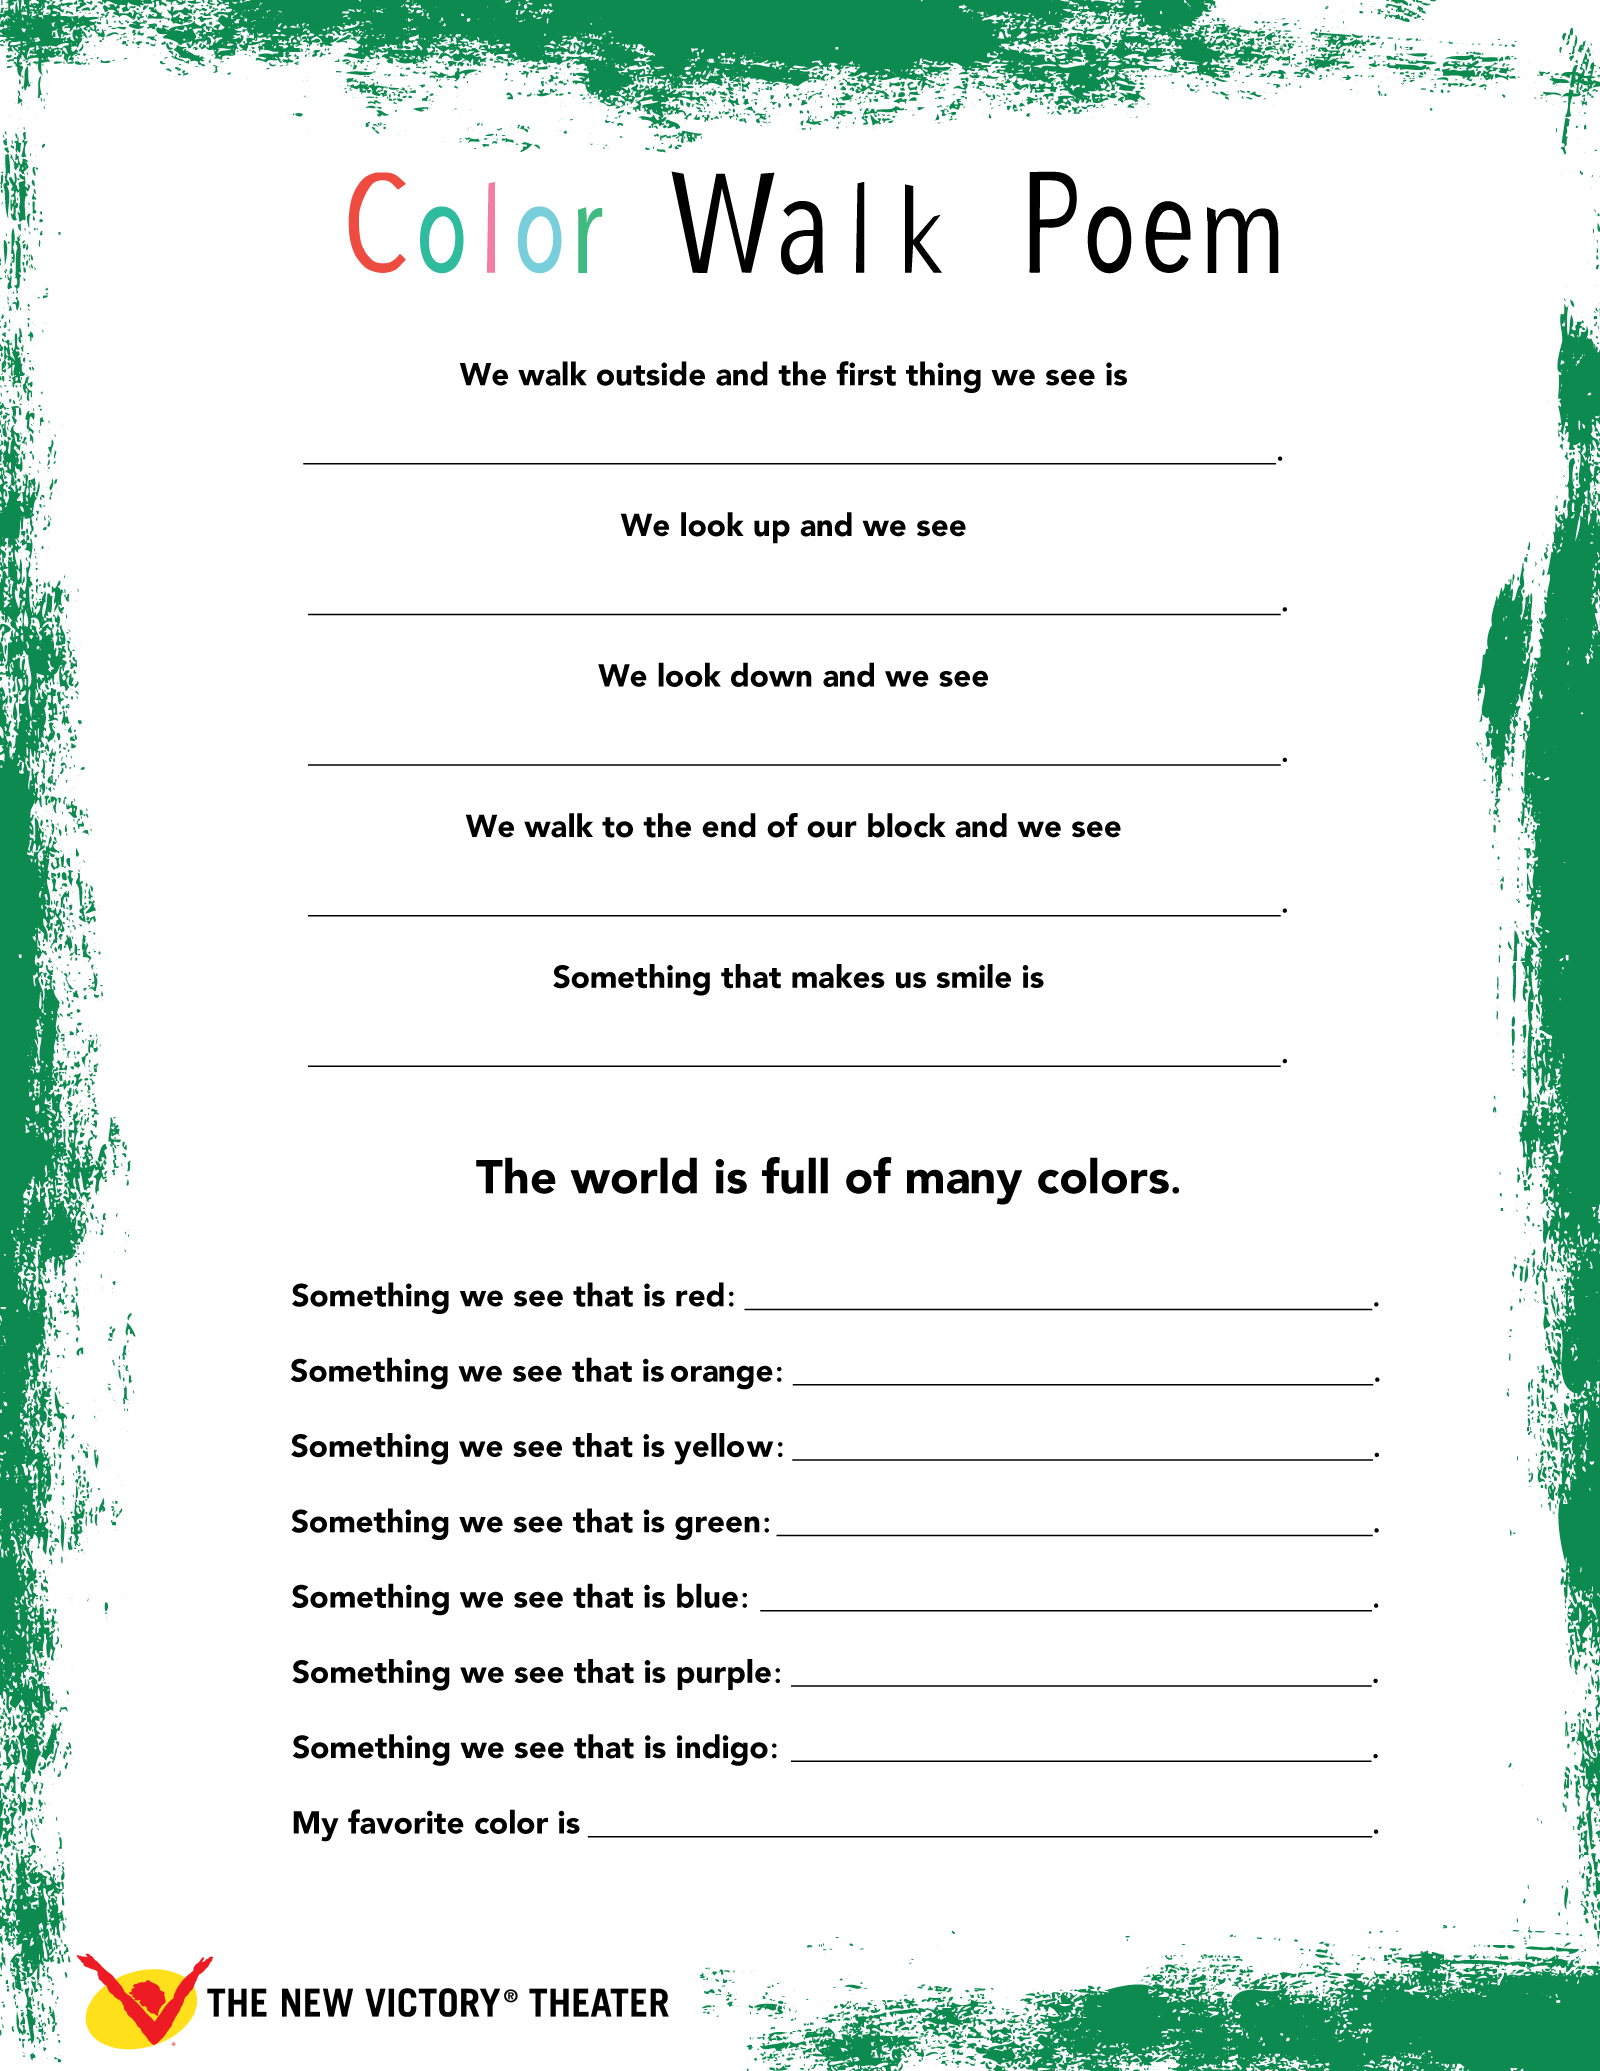 Color Walk Poem